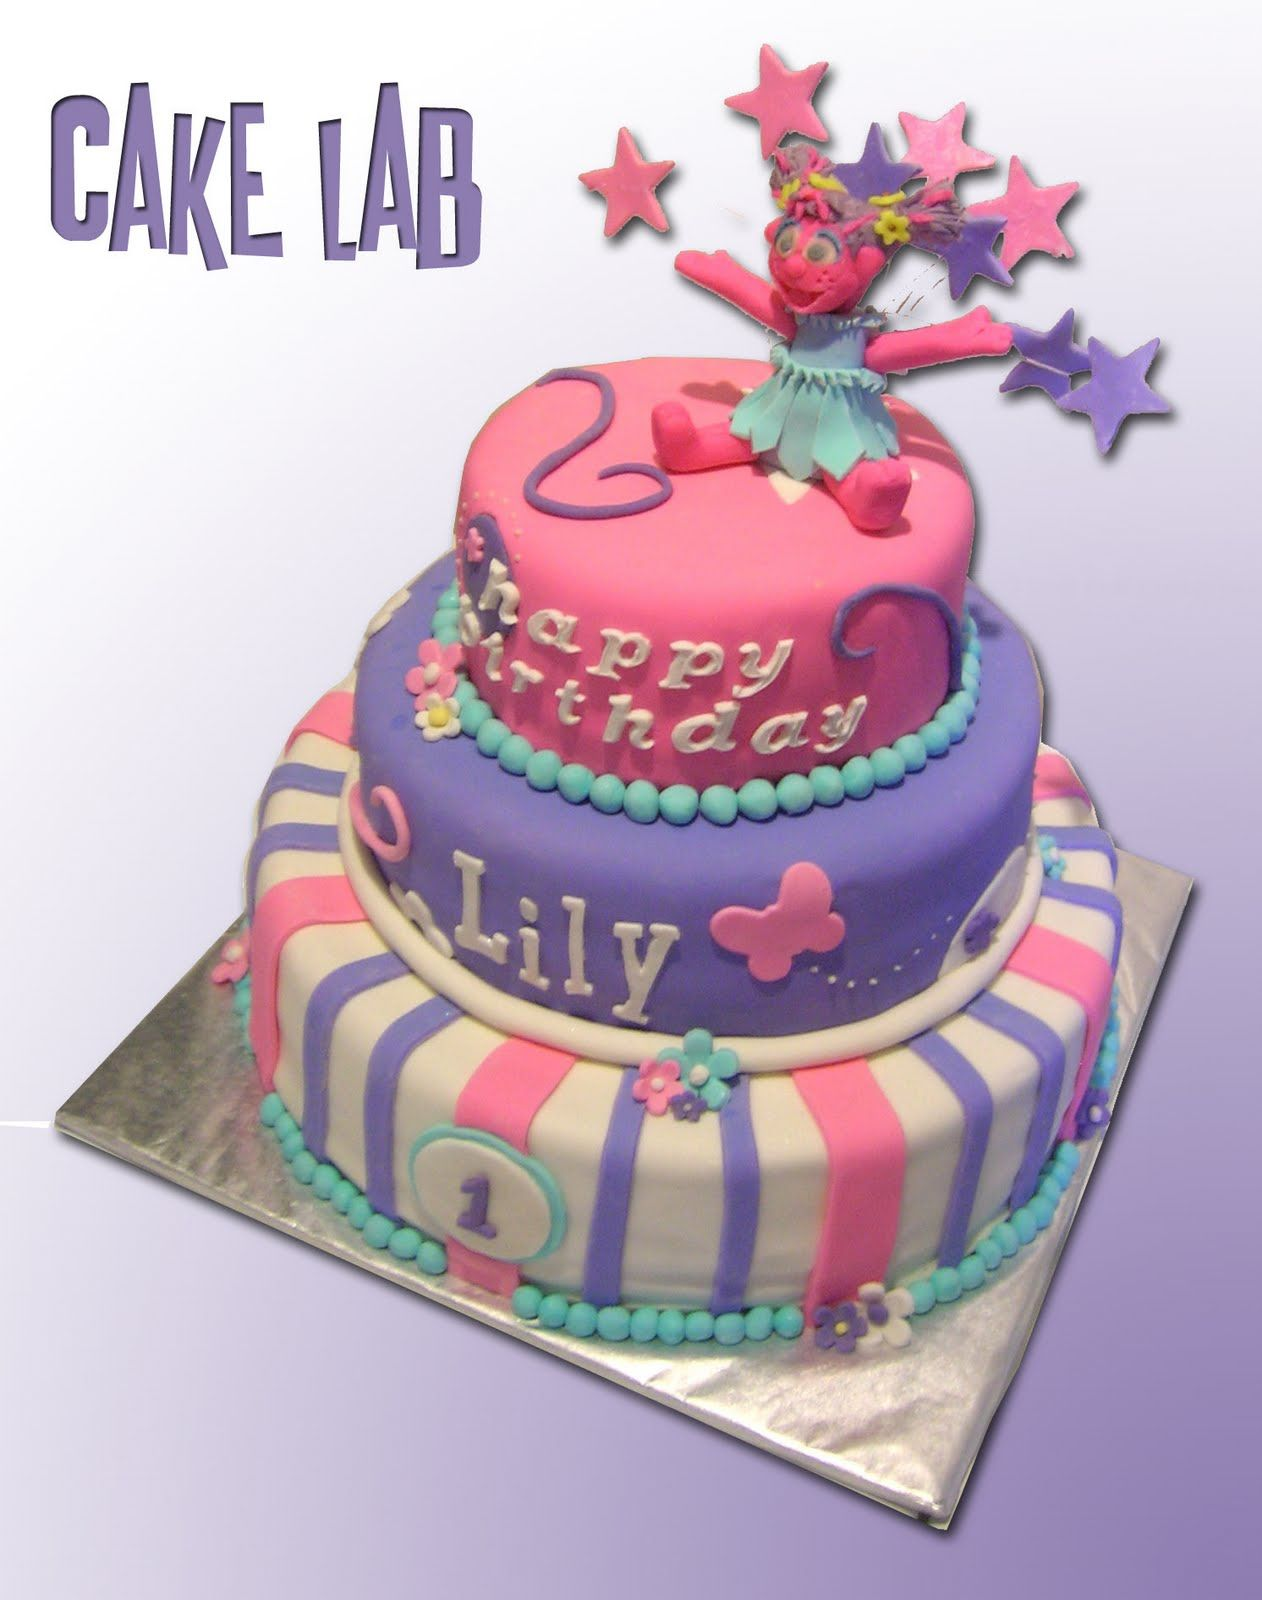 3 tiered sesame street cake for girls | ZacO Cakes: Abby Cadabby ...